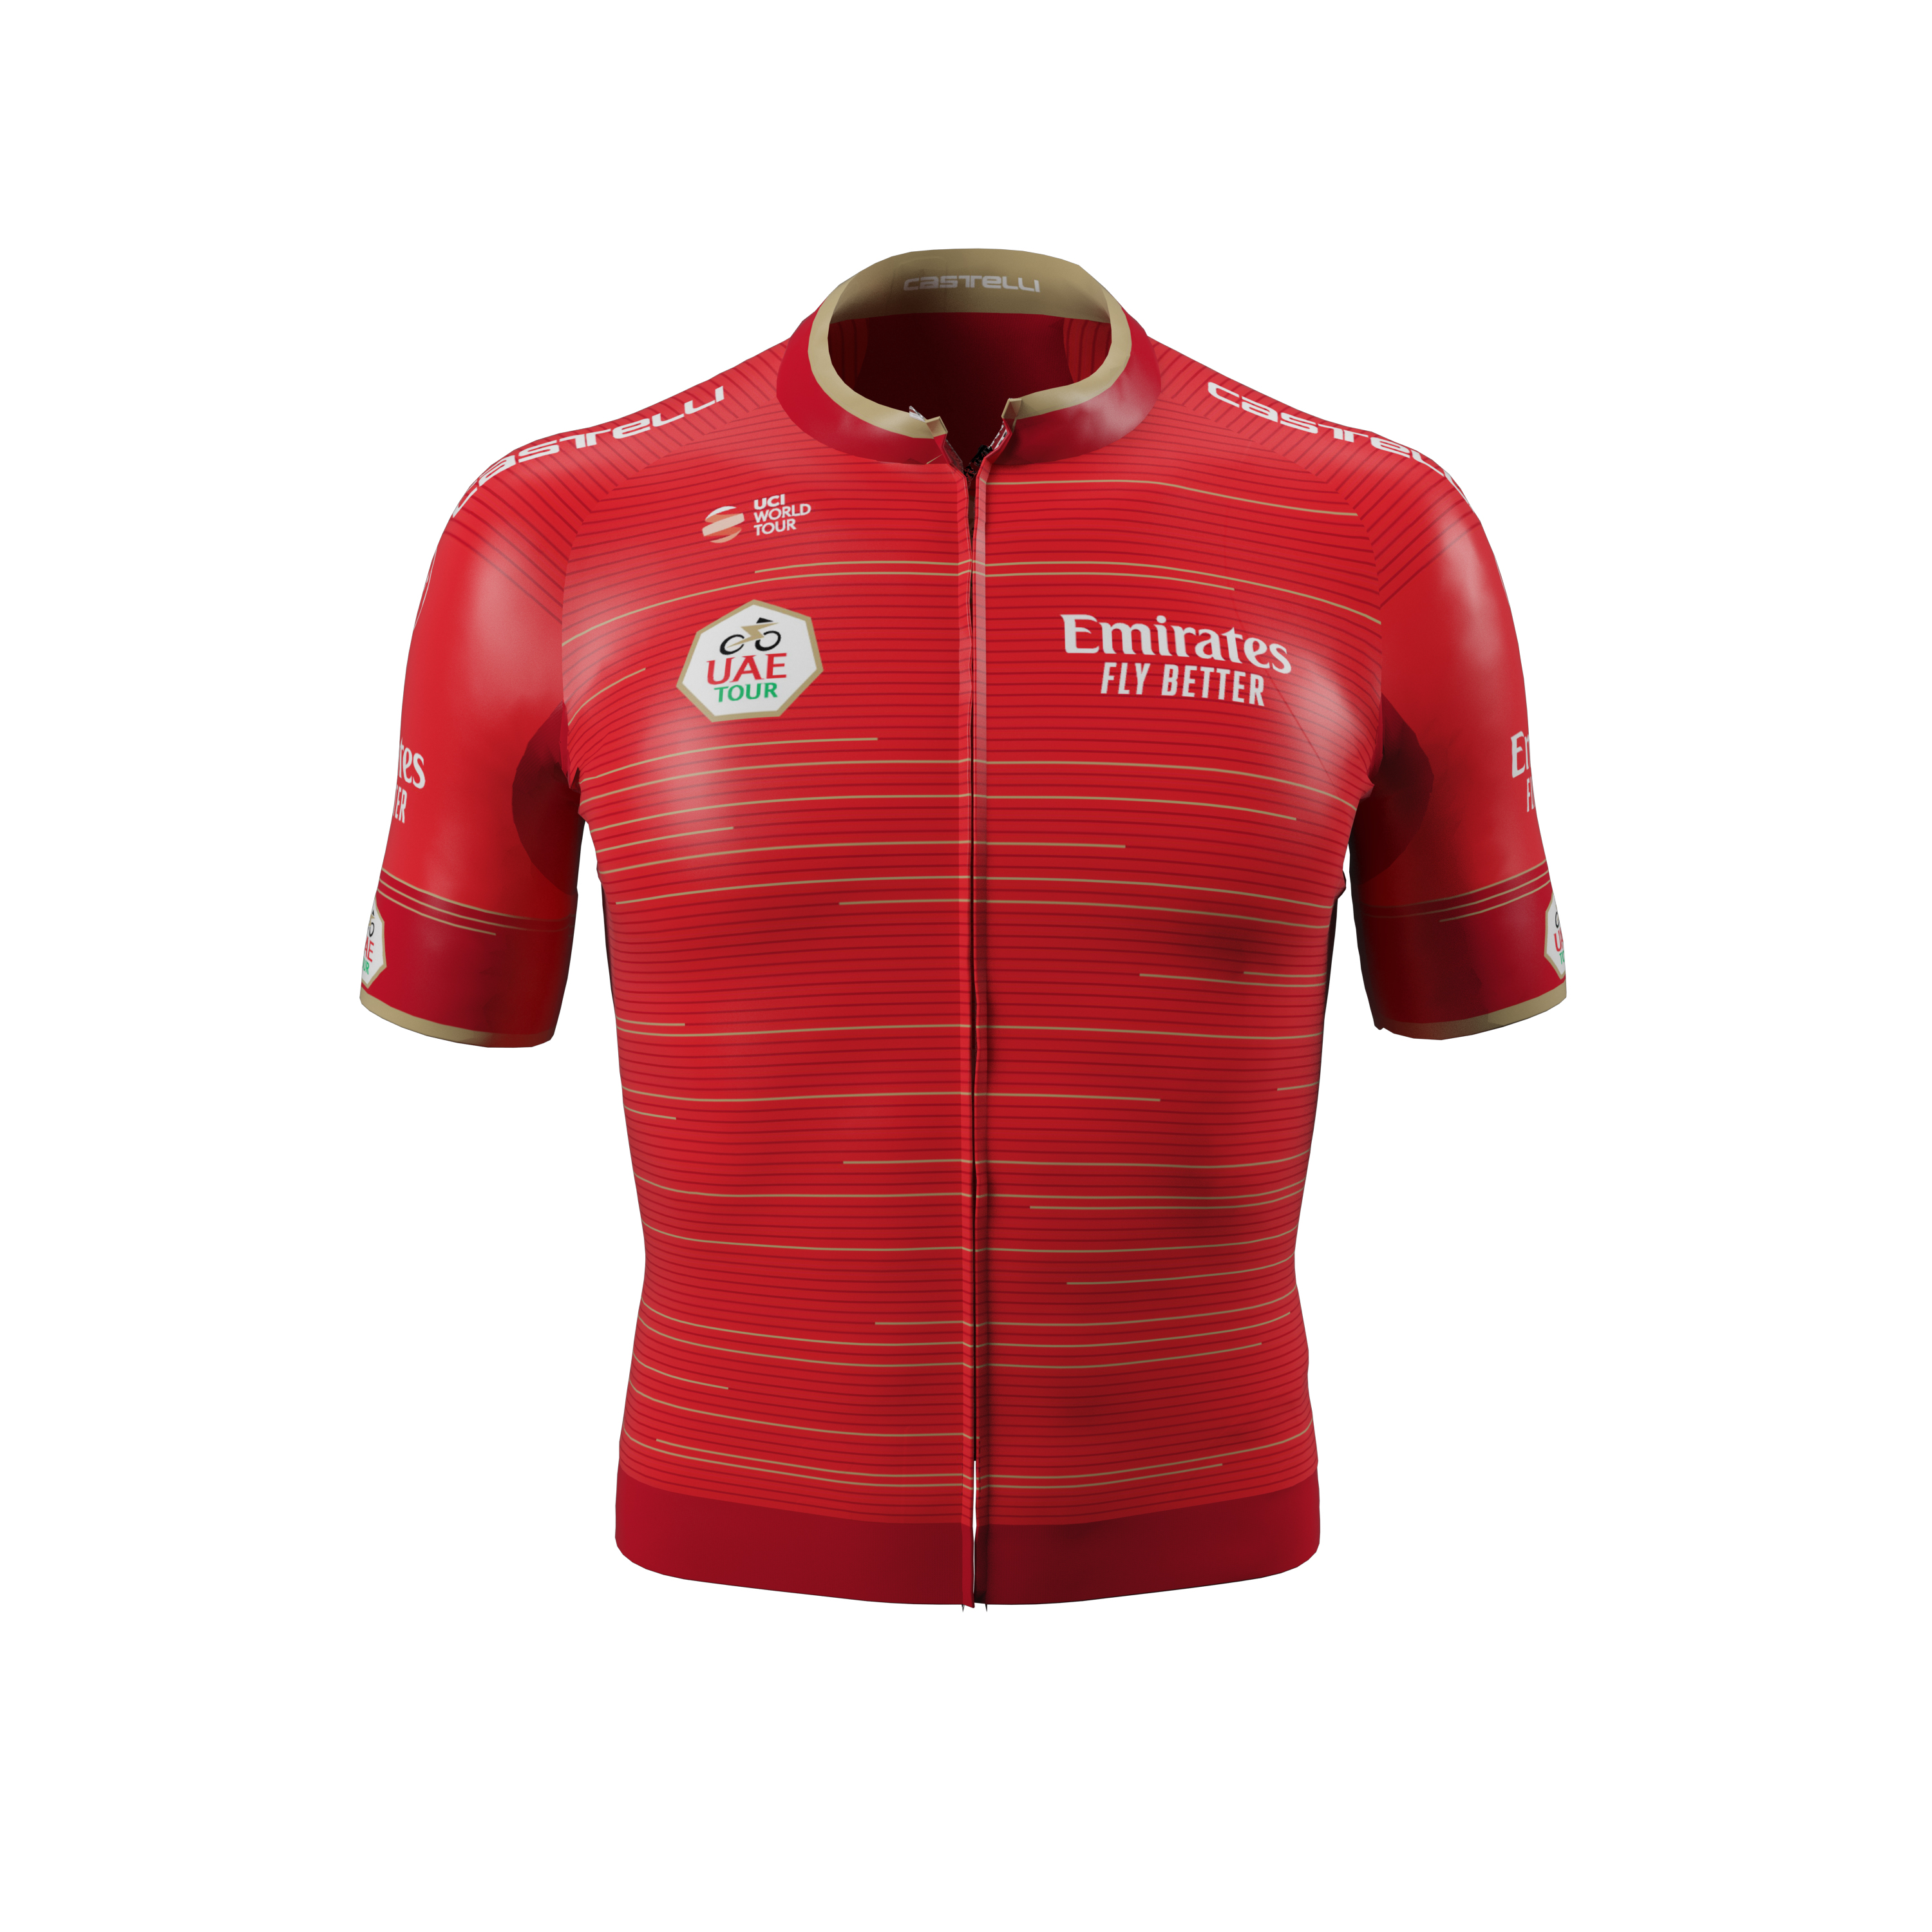 Worn every day, starting from stage 2, by the leader of the general classification.